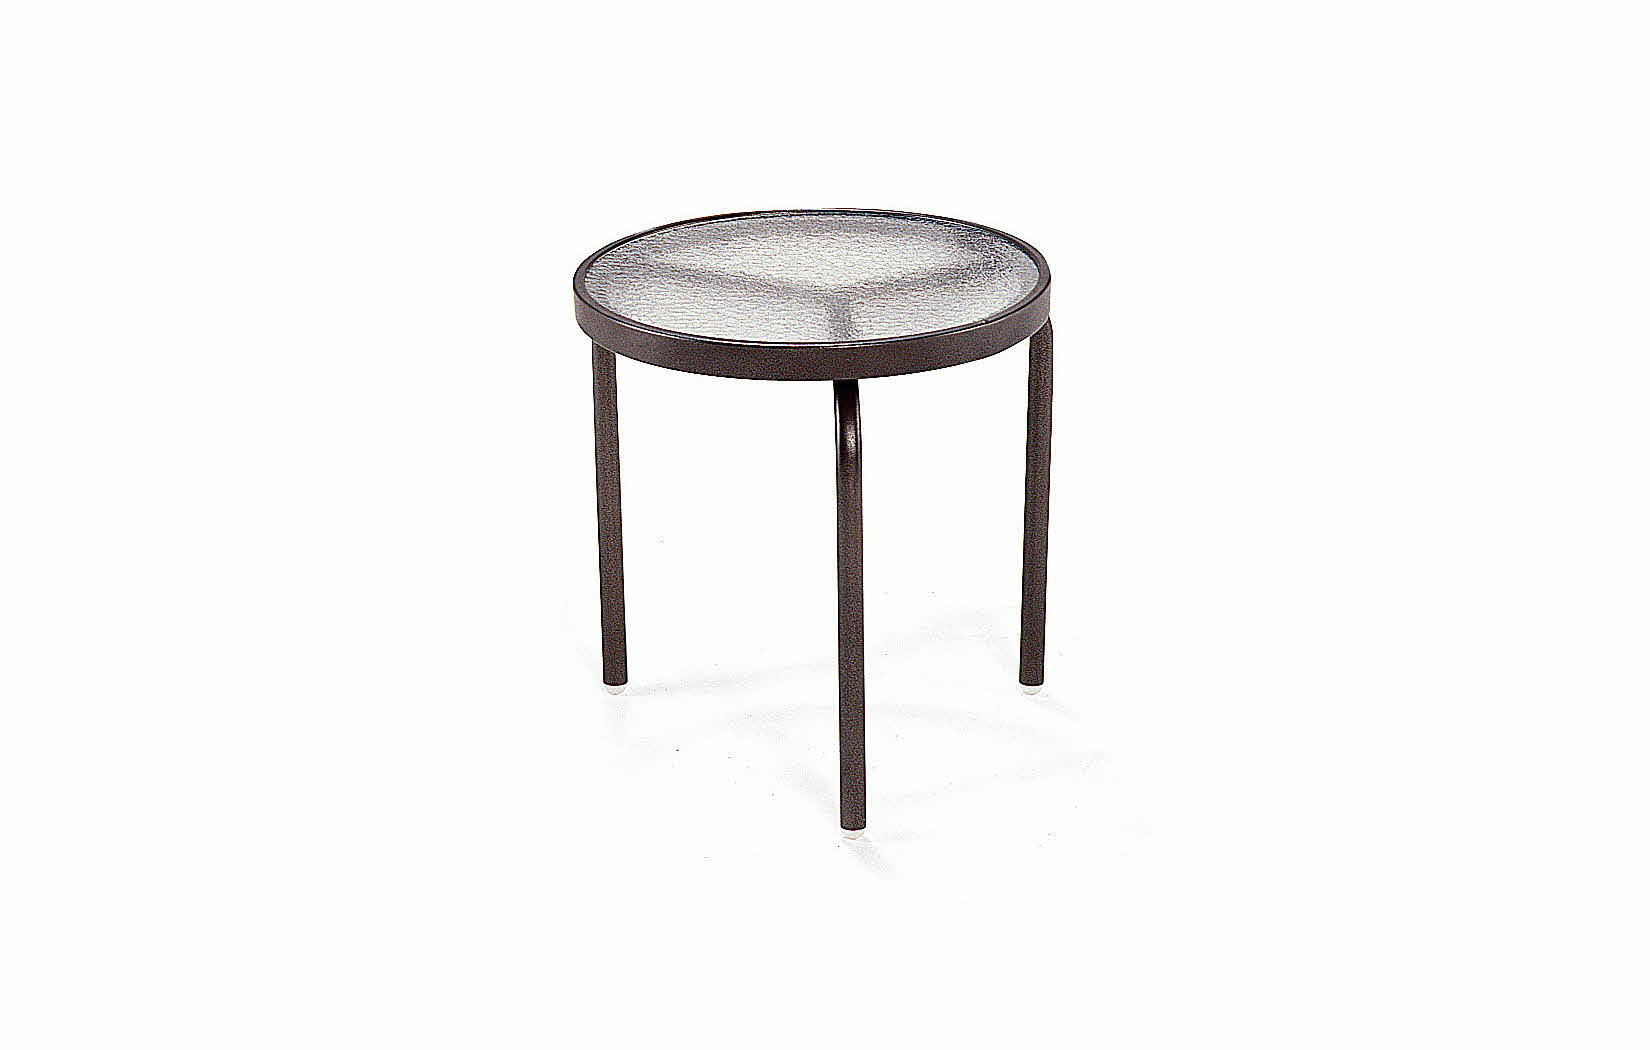 outdoor side tables commercial furniture texacraft main accent table acrylic top concrete coffee small occasional ikea dining room chair styles patio sofa rustic living tall